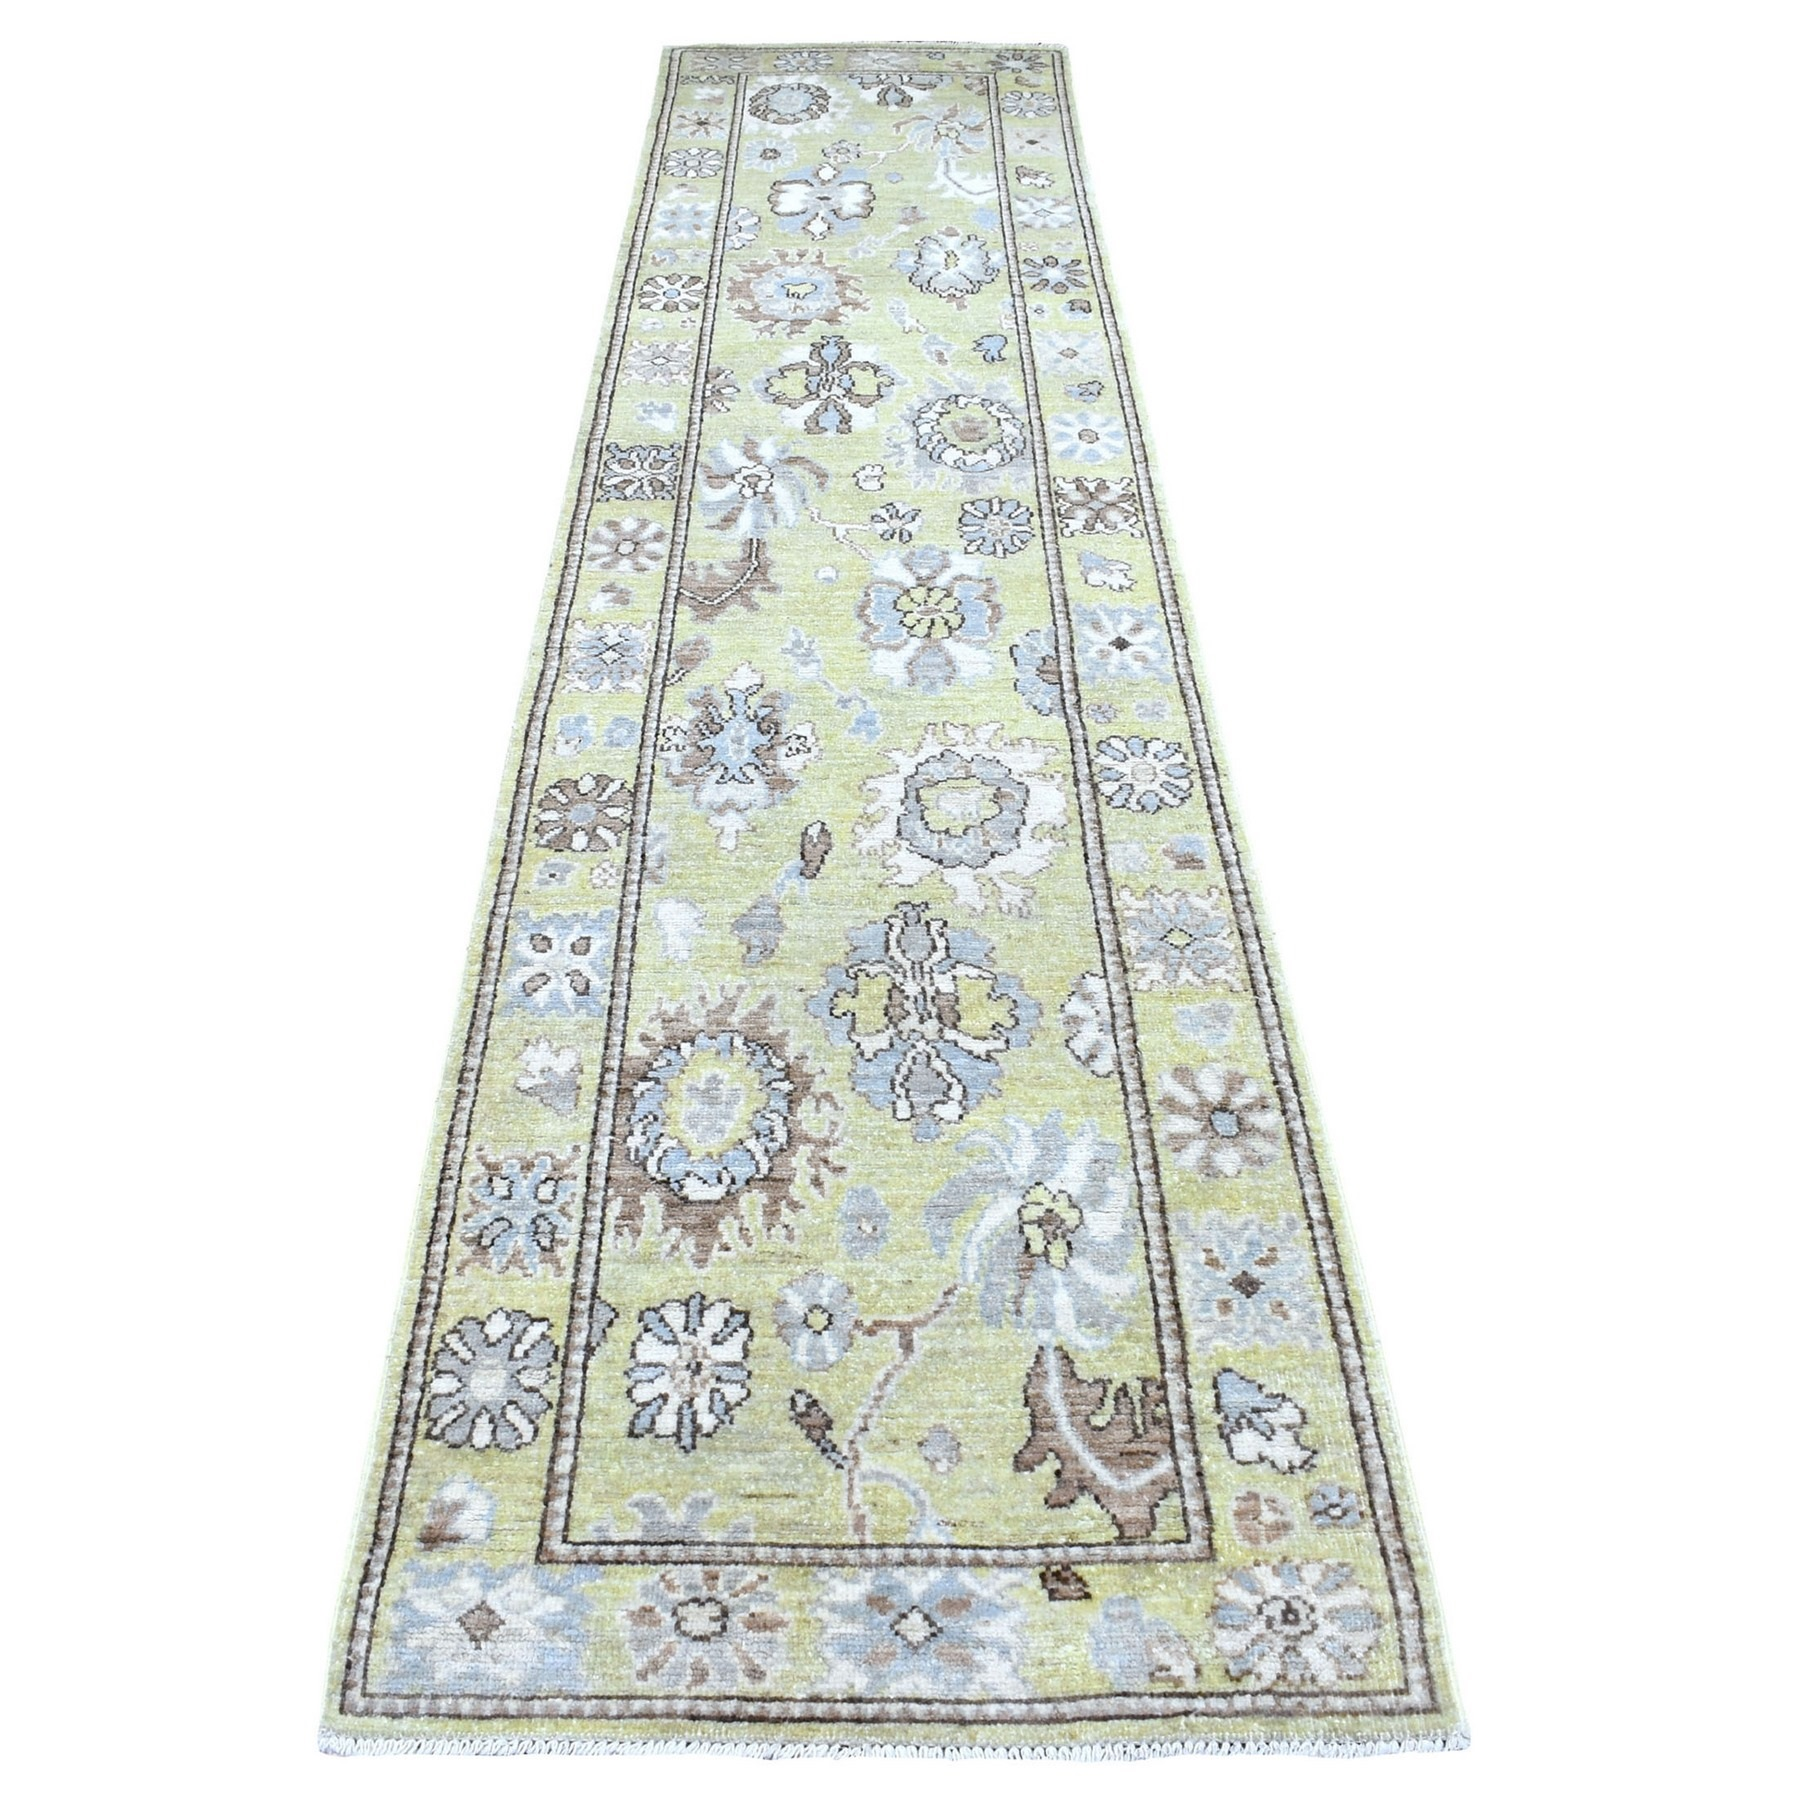 Oushak And Peshawar Rugs LUV609408